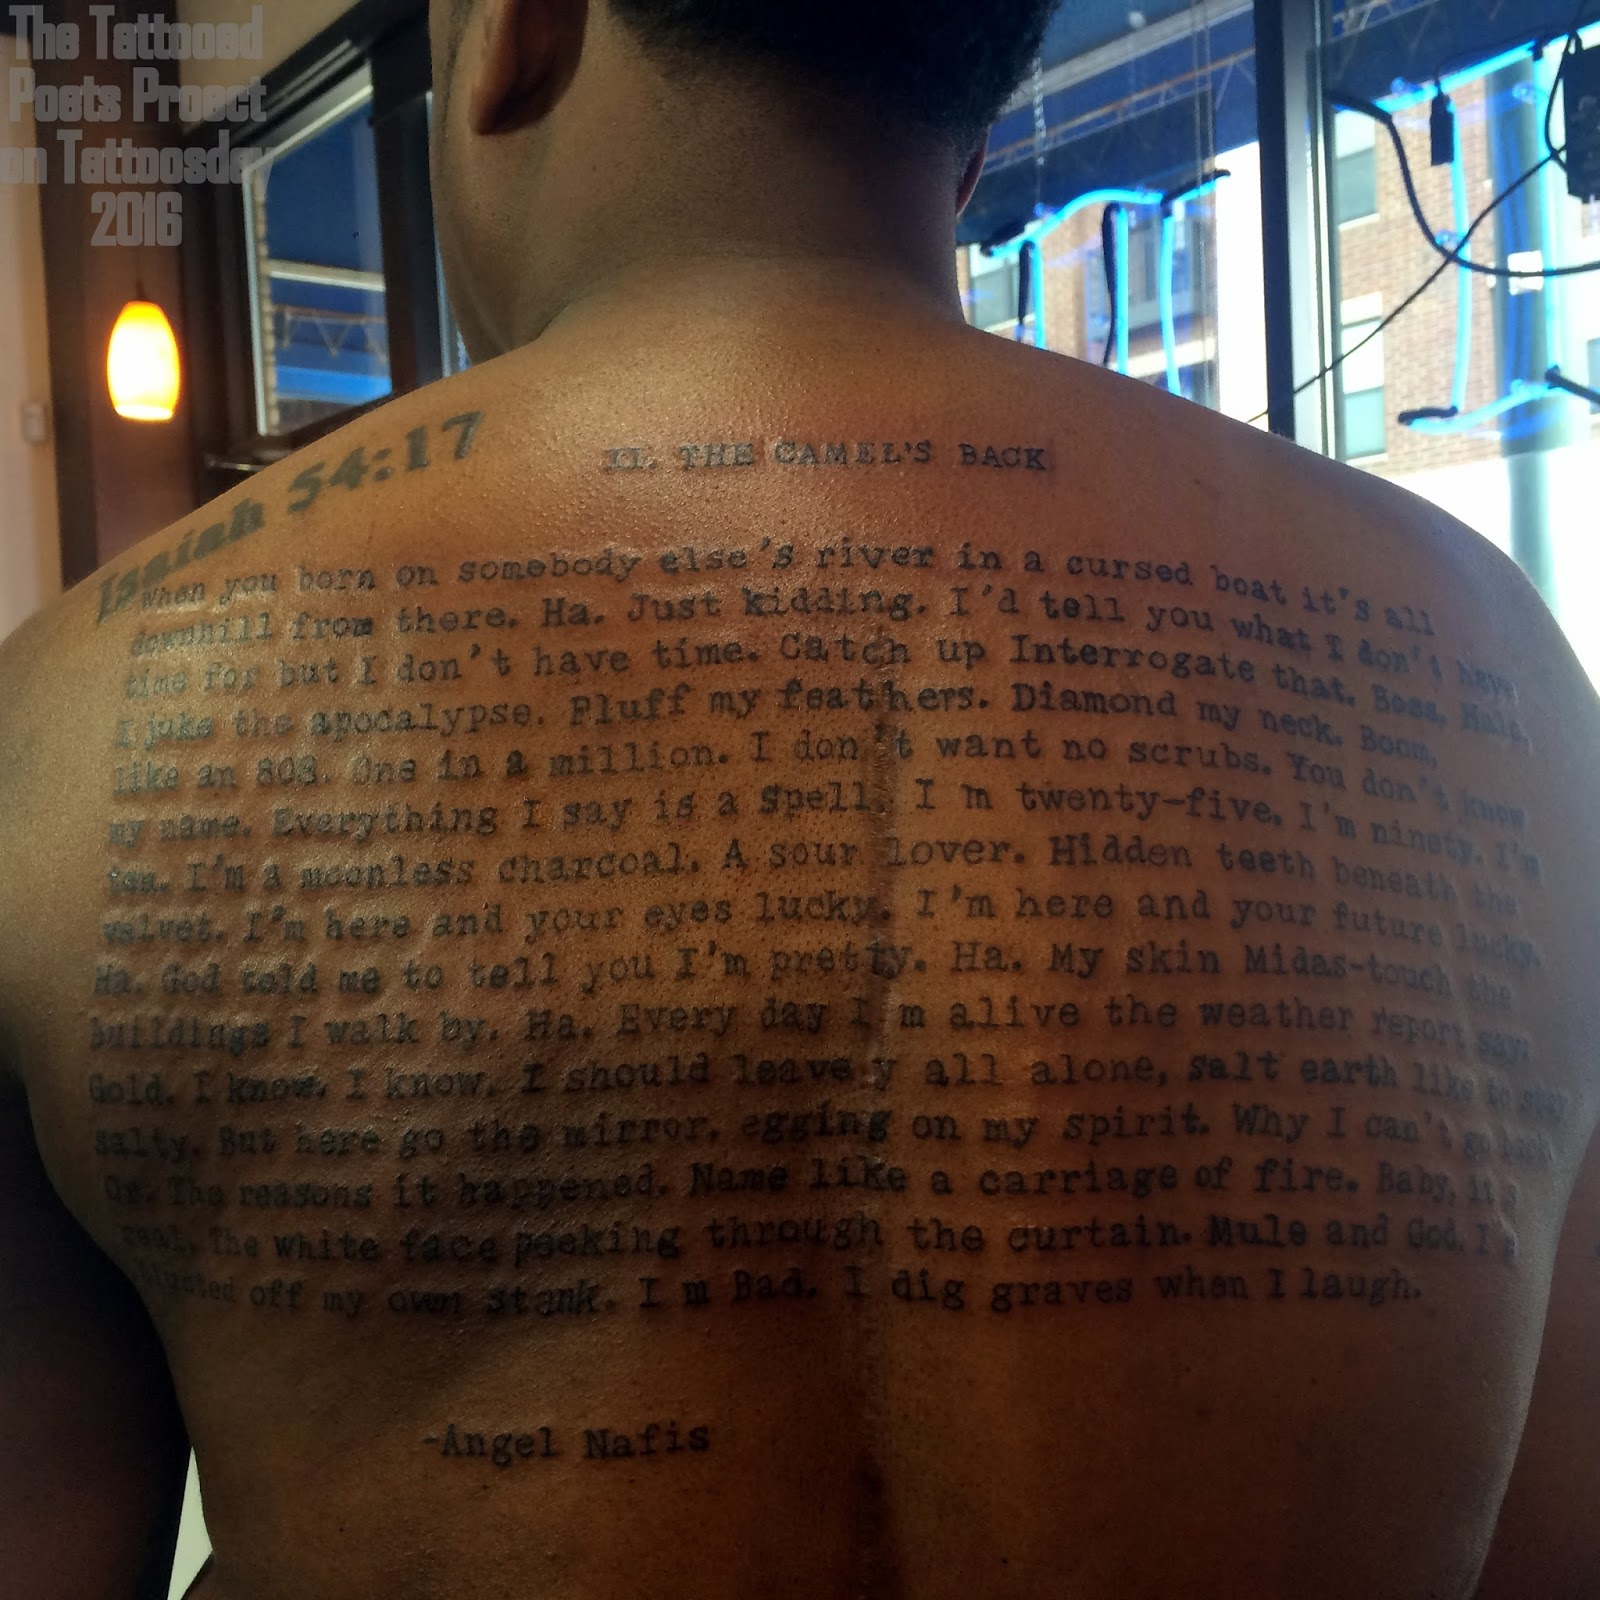 Danez Smith's back, the text is from Gravity by Angel Nafis; Source: http://tattoosday.blogspot.com/